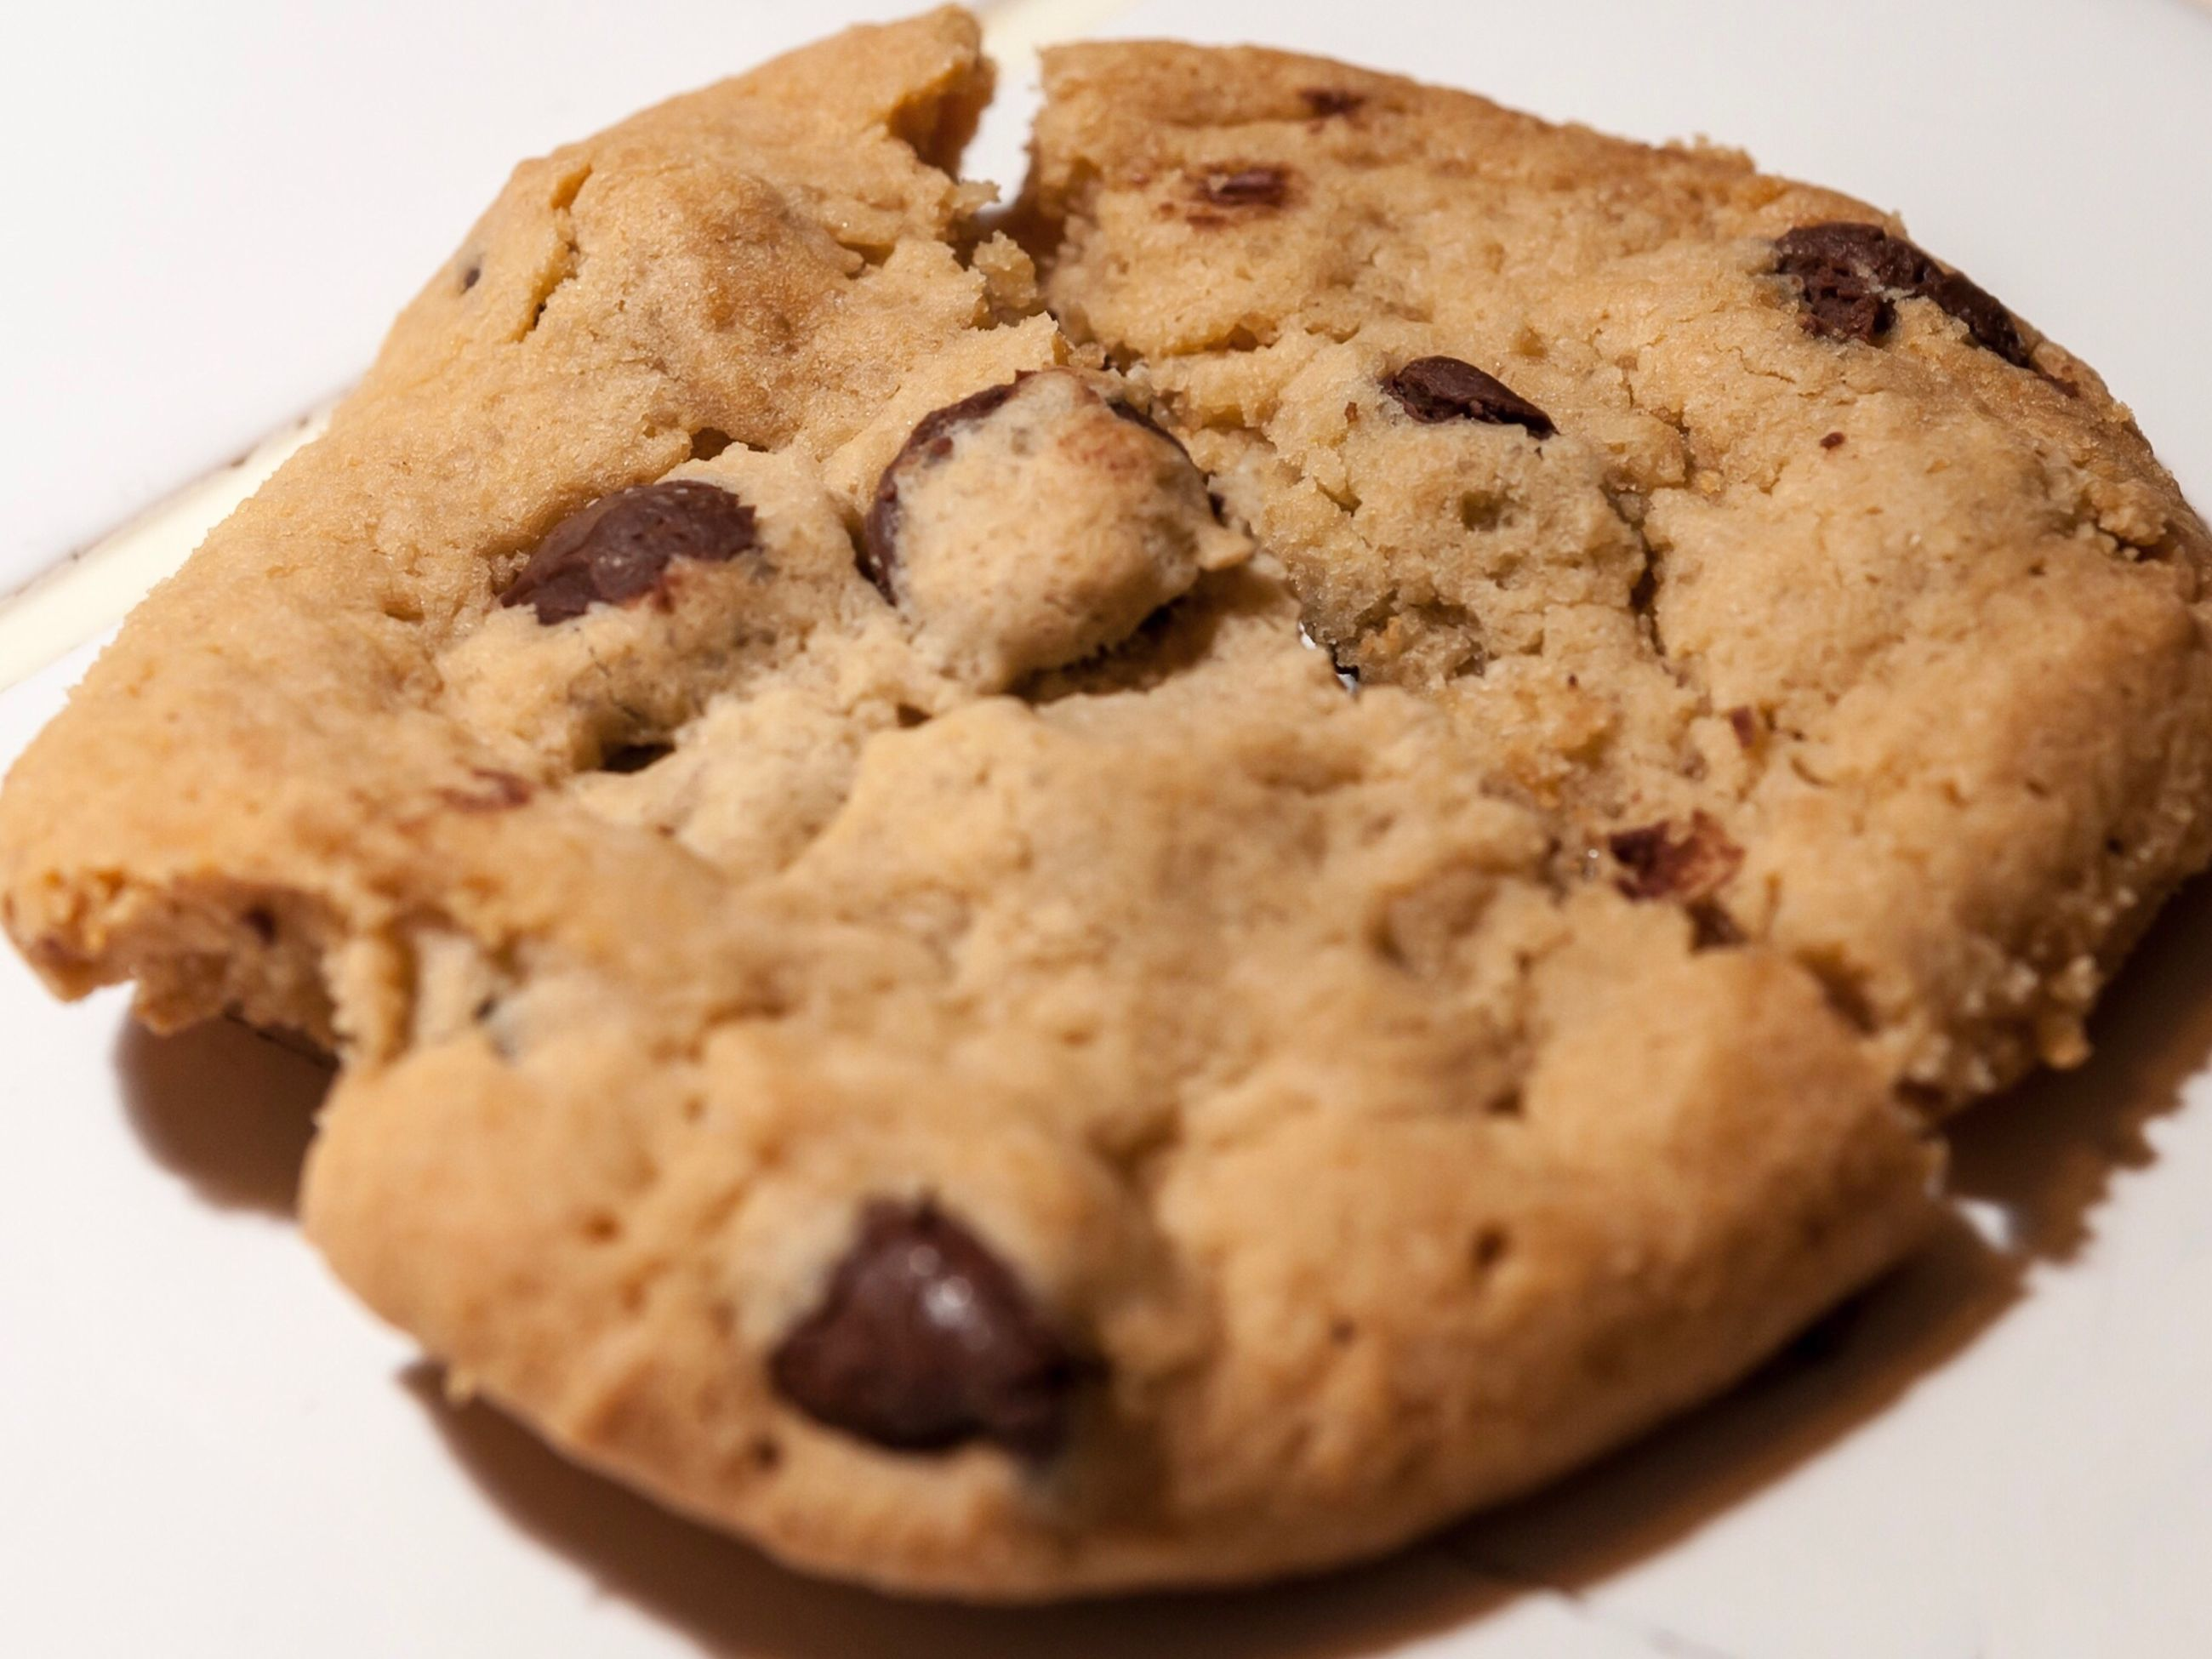 food and drink, food, sweet food, cookie, chocolate chip cookie, baked, dessert, indulgence, white background, chocolate chip, freshness, studio shot, close-up, no people, ready-to-eat, indoors, day